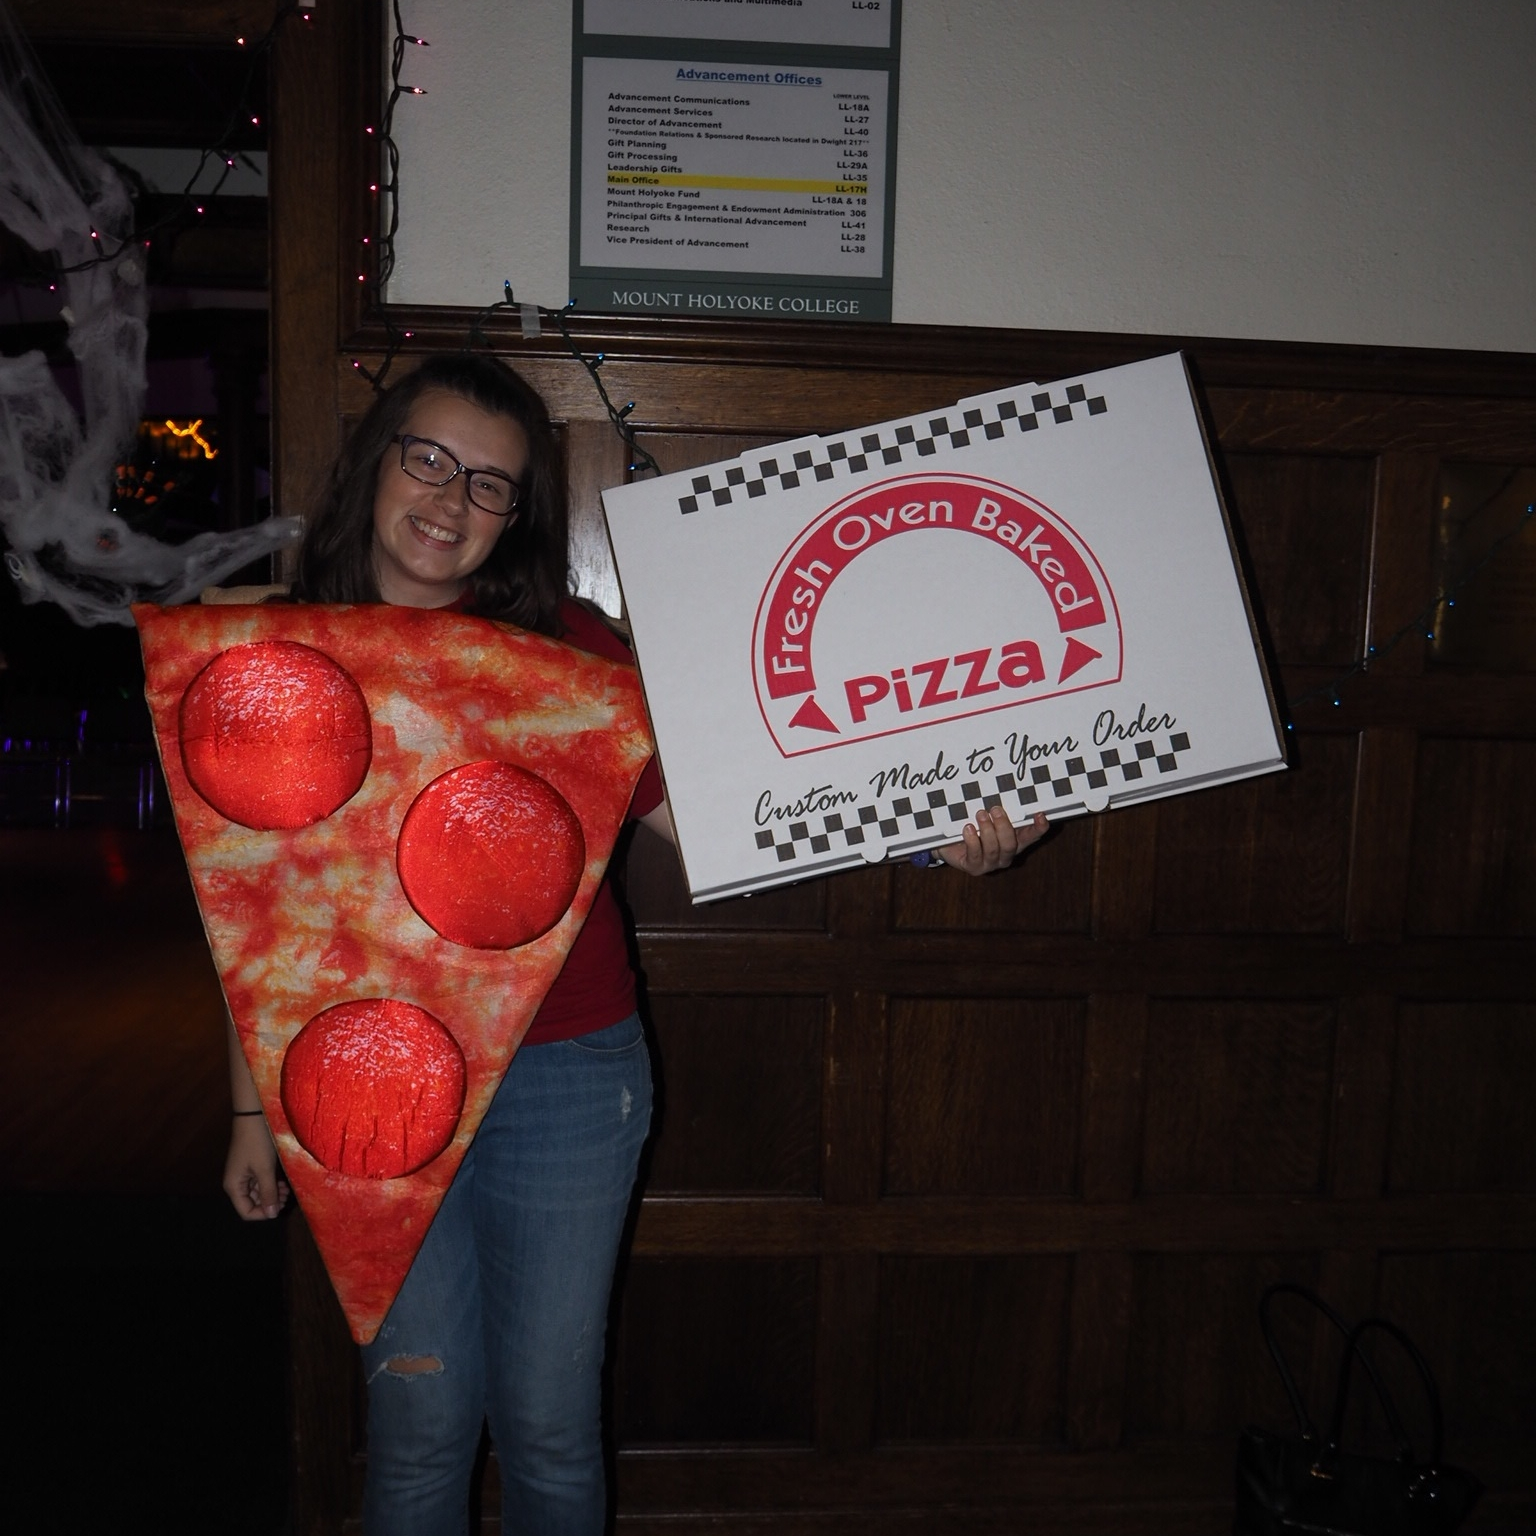 Student Event and Special Programs Coordinator Riley Fickett dressed as a slice of pizza on Saturday.